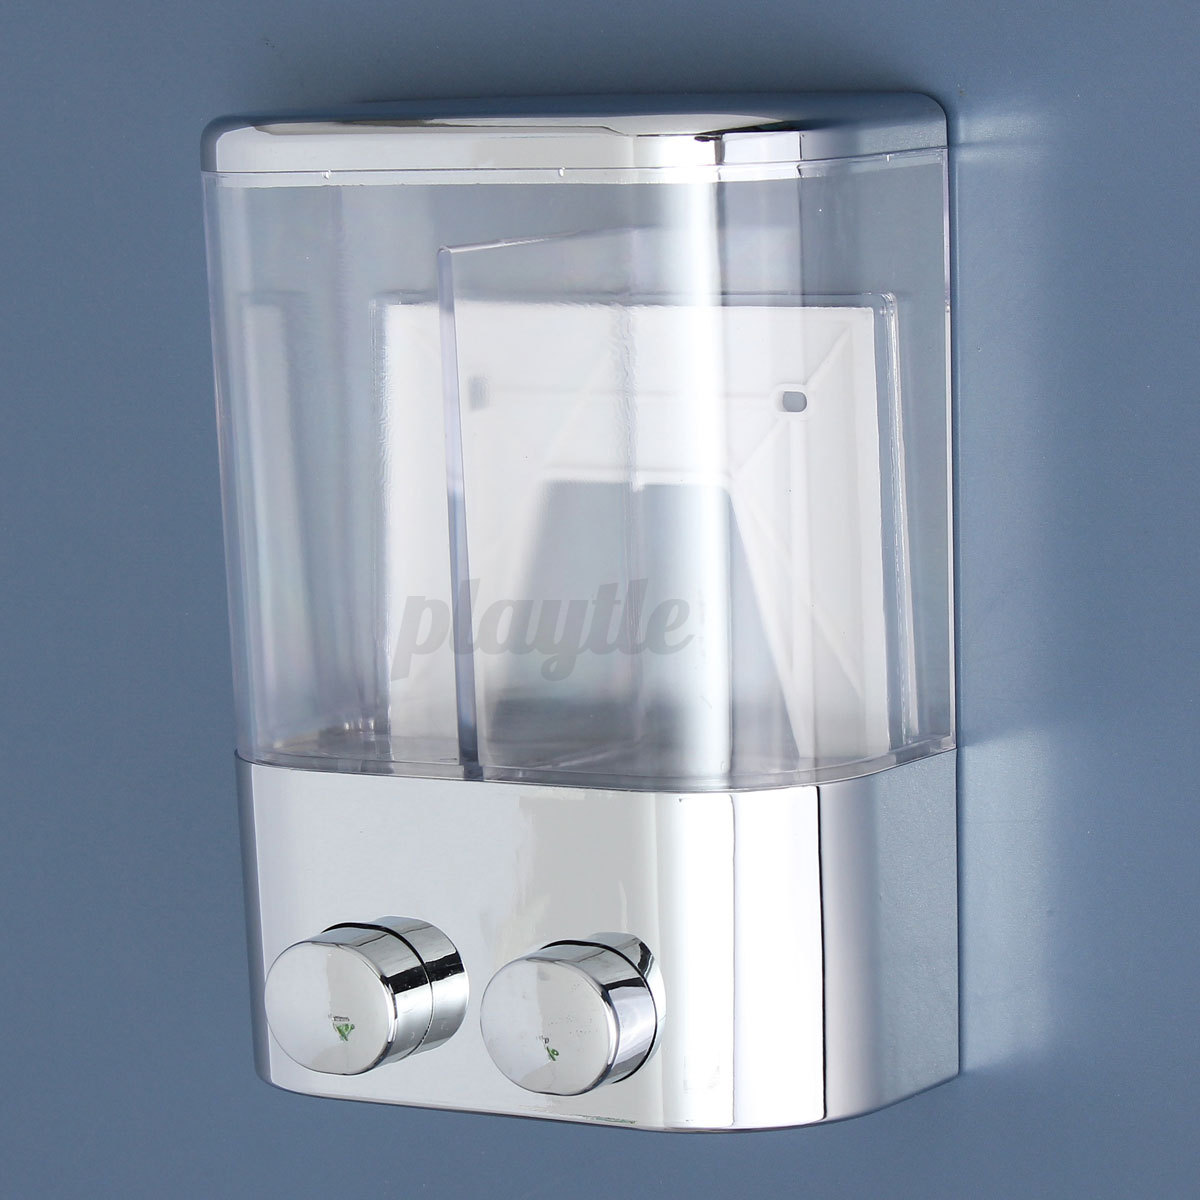 Soap And Shampoo Dispensers For Showers Double Wall Mount Soap Shampoo Shower Gel Dispenser Liquid